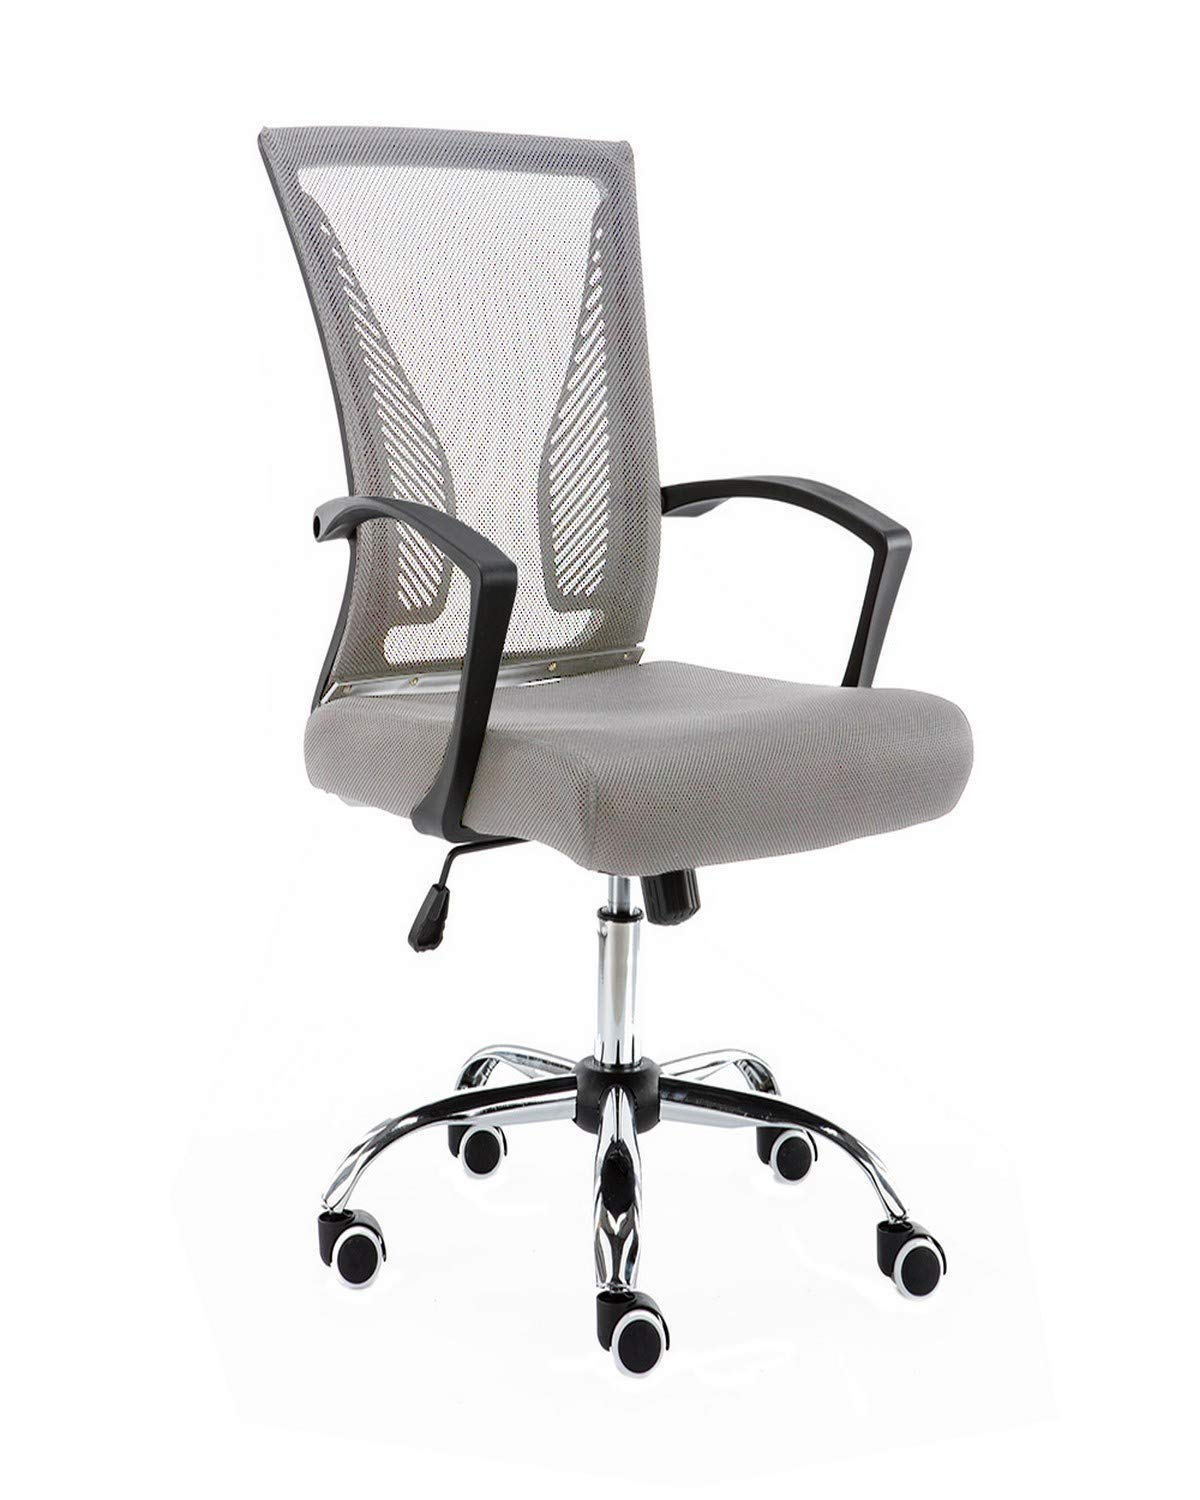 Modern Home BKGRAY Zuna Mid - Back Office Chair, Black/Gray